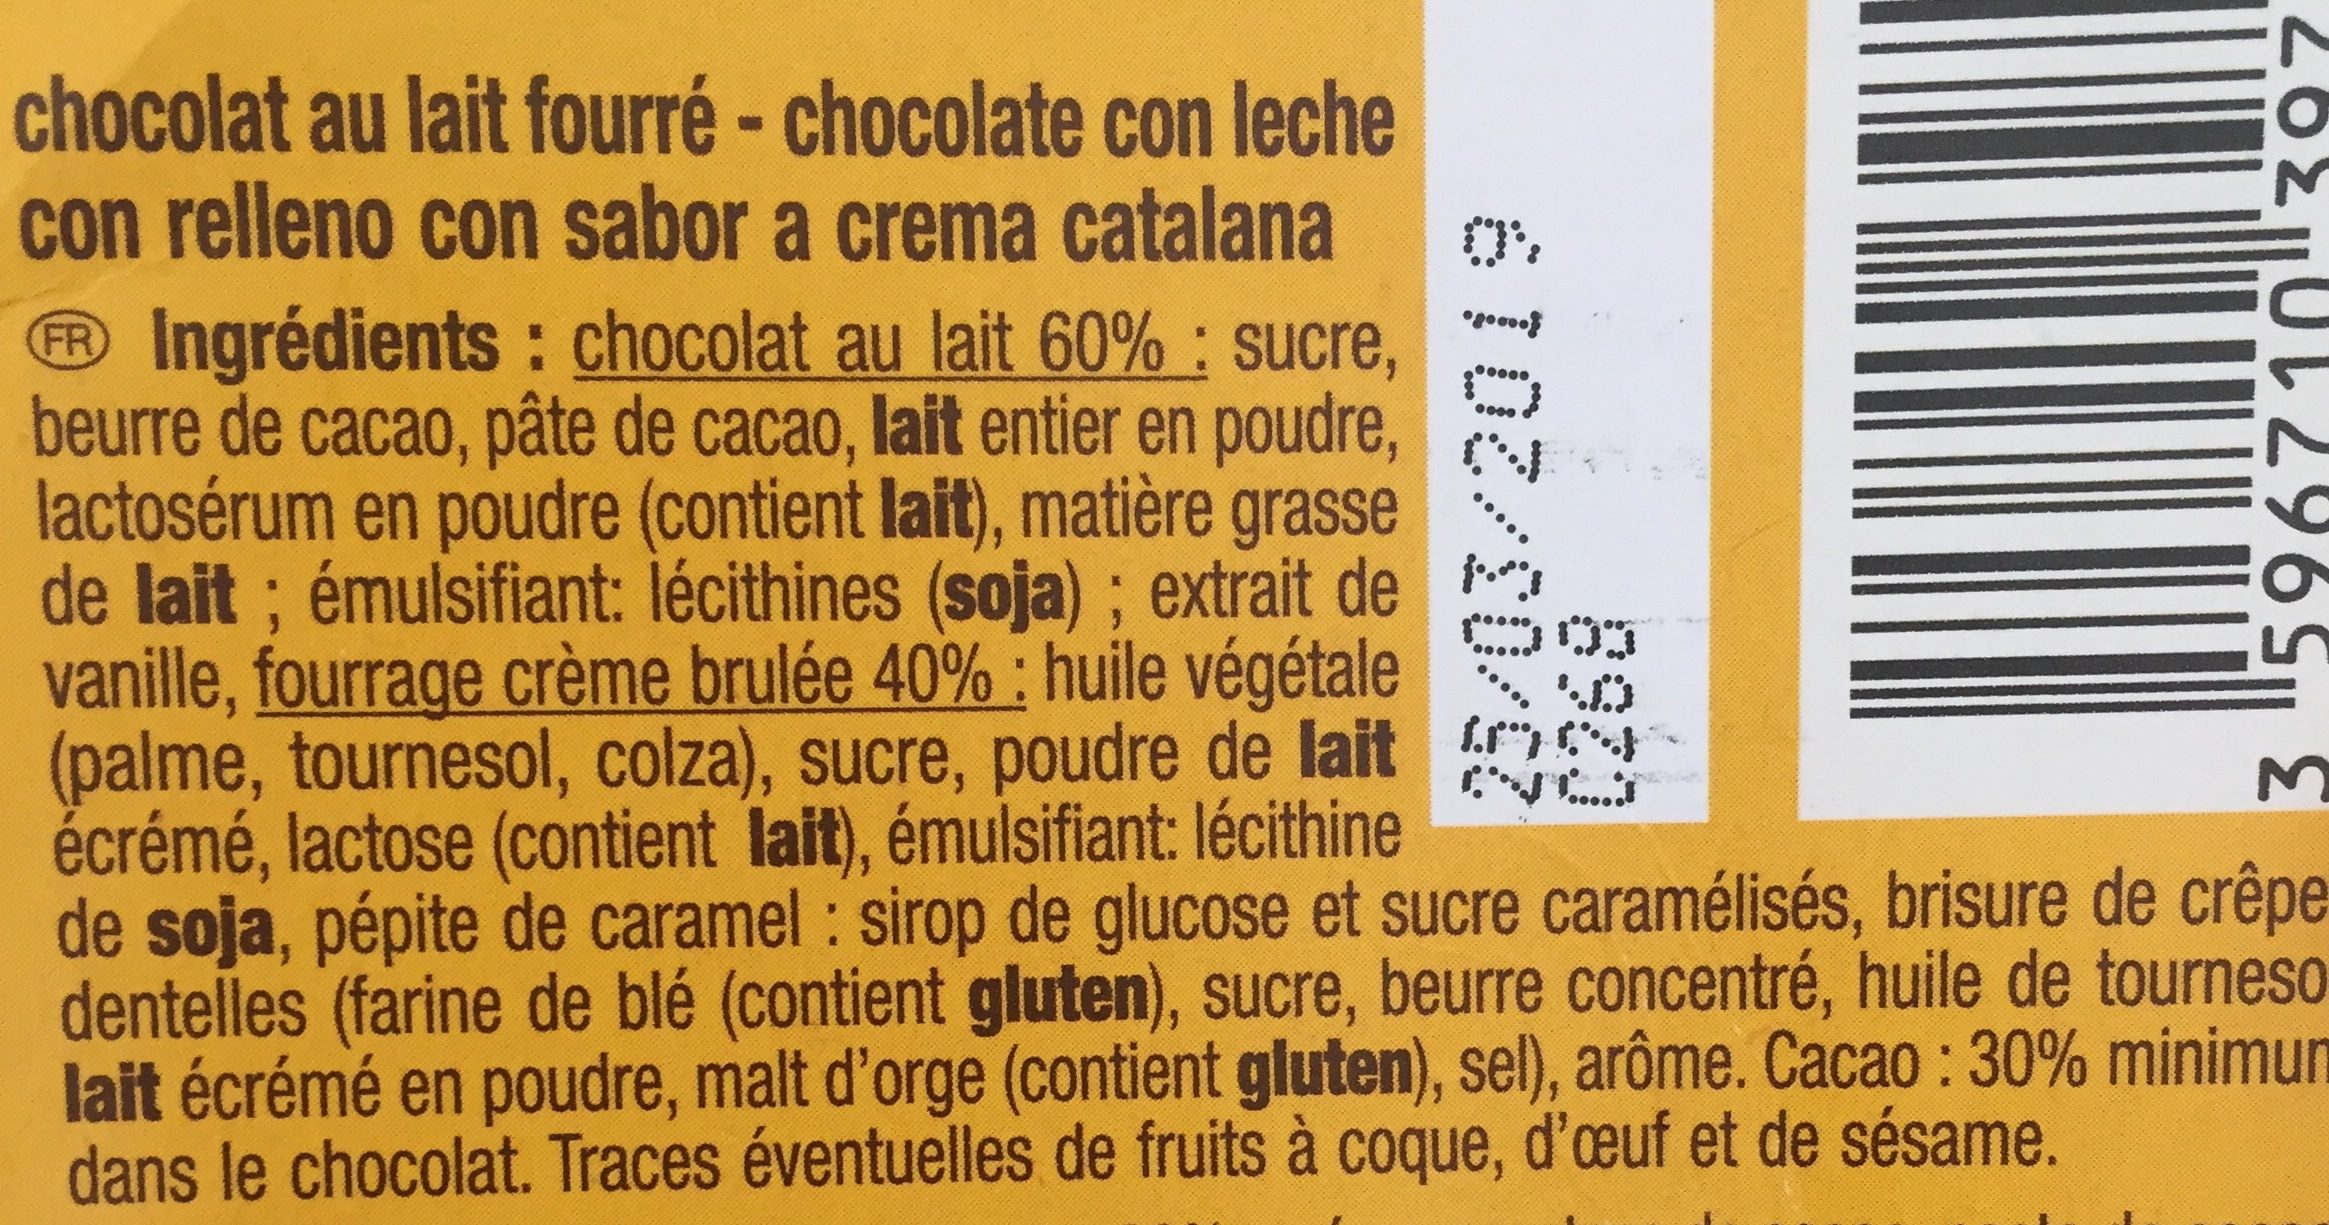 Chocolat au lait fourre facon creme brulee - Ingredients